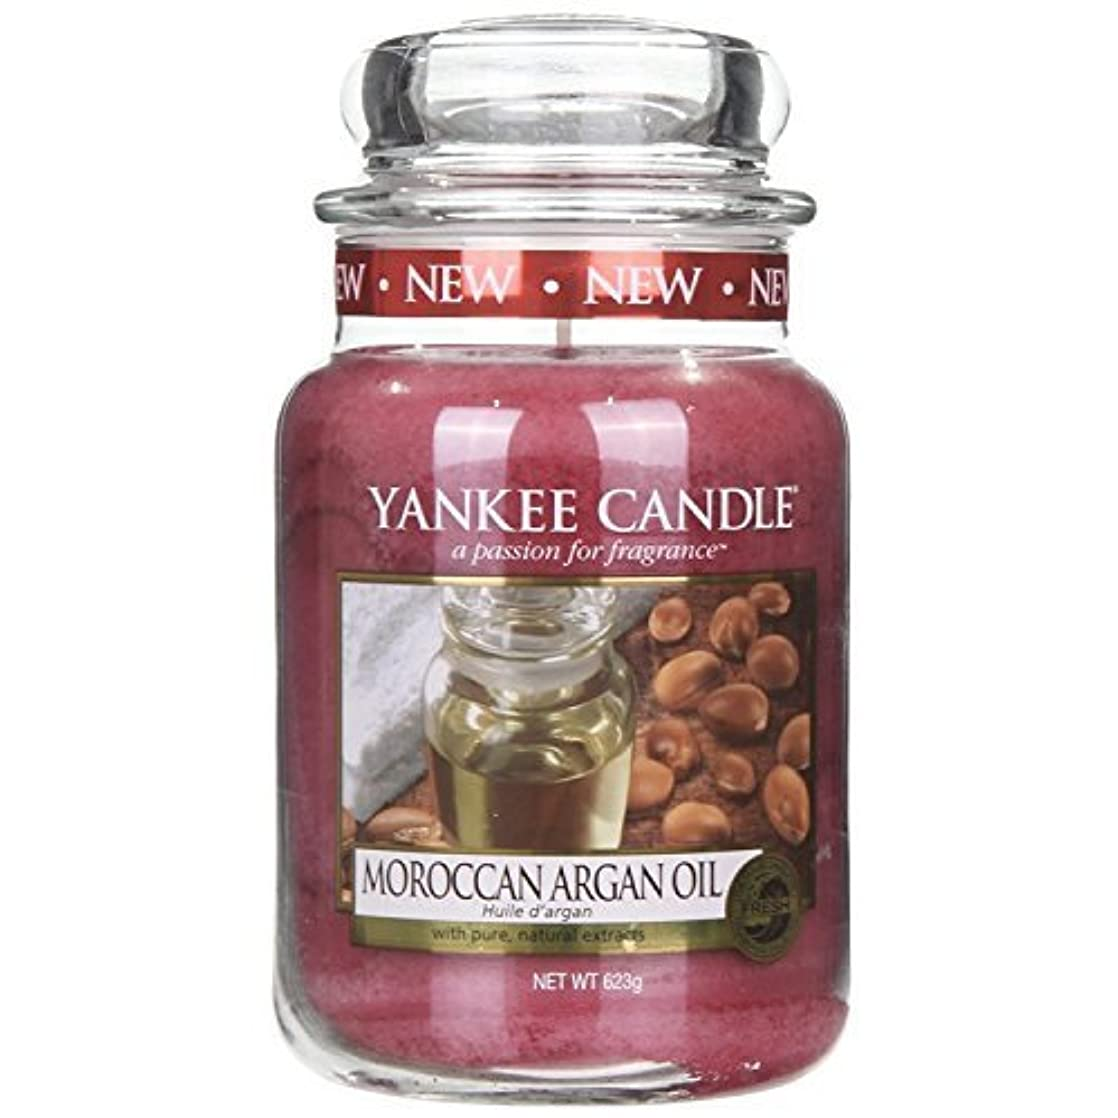 着るぶら下がる会うYankee Candle MOROCCAN ARGAN OIL 22oz Large Jar Candle - UK Exclusive by Yankee Candle [並行輸入品]